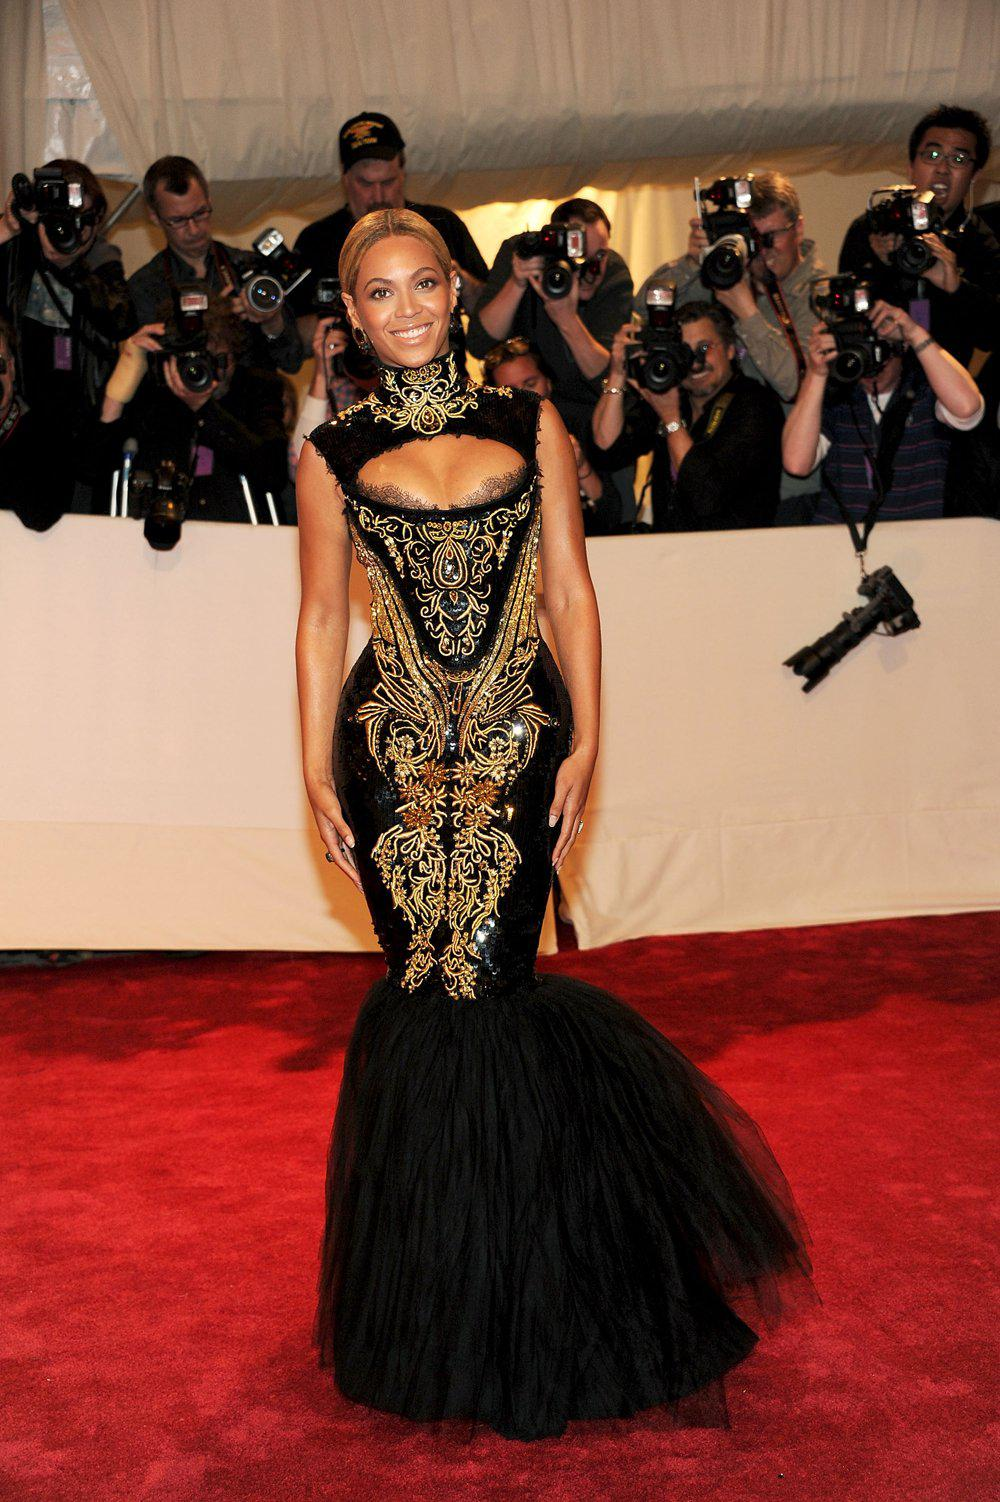 Wholesale Beyonce Prom Dresses - Buy Cheap Beyonce Prom Dresses ...